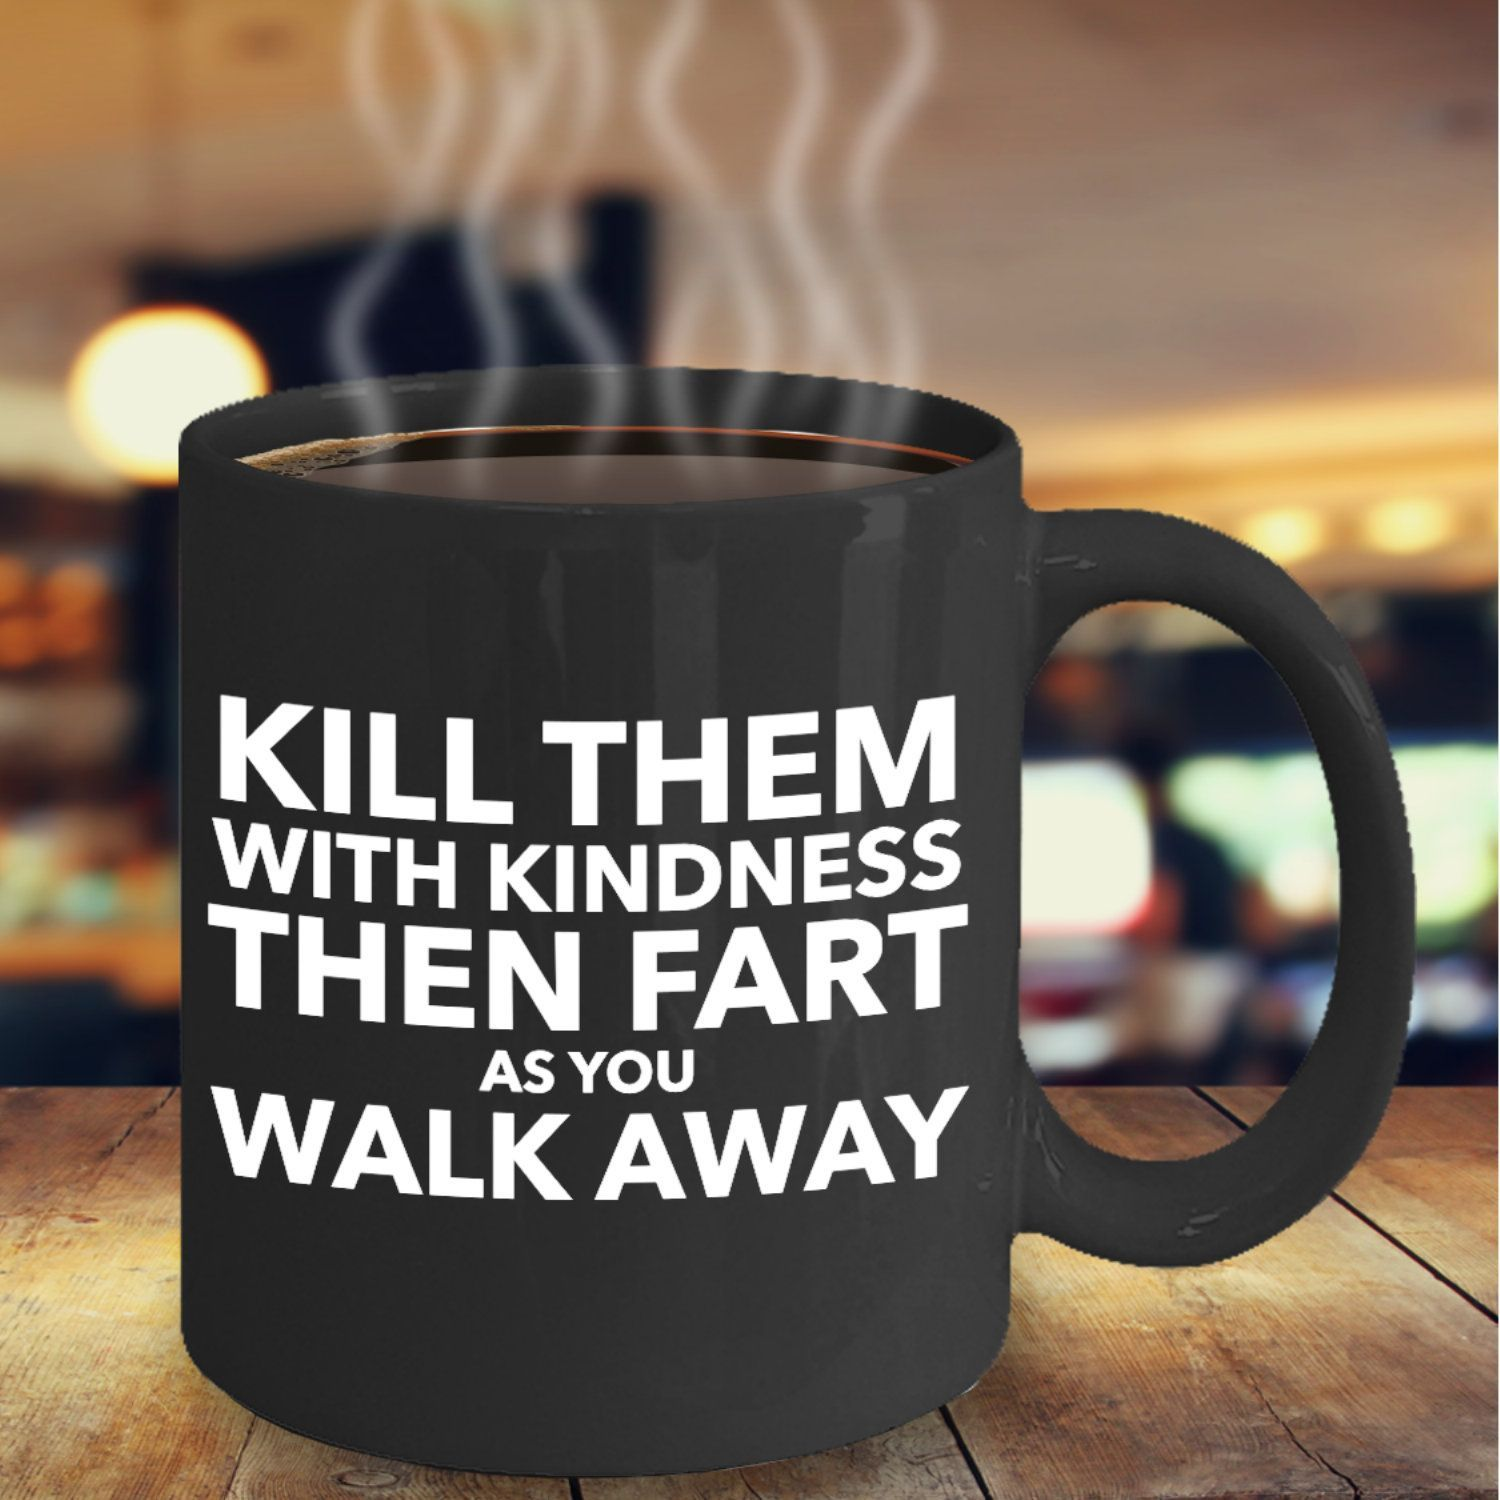 Funny coffee mug for menKill them with kindness